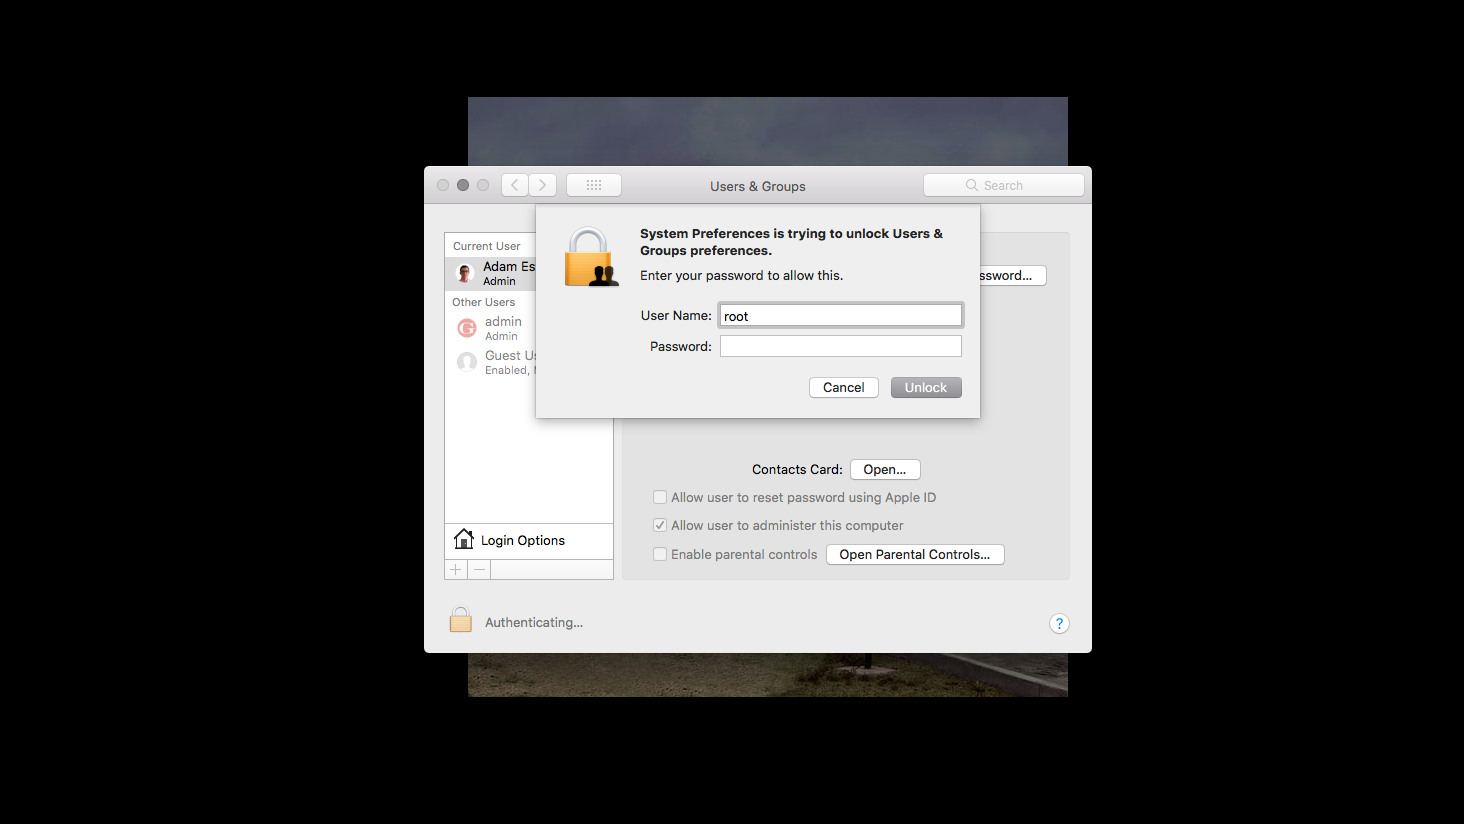 Huge macOS Bug Allows Root Login Without a Password. Here's the Fix